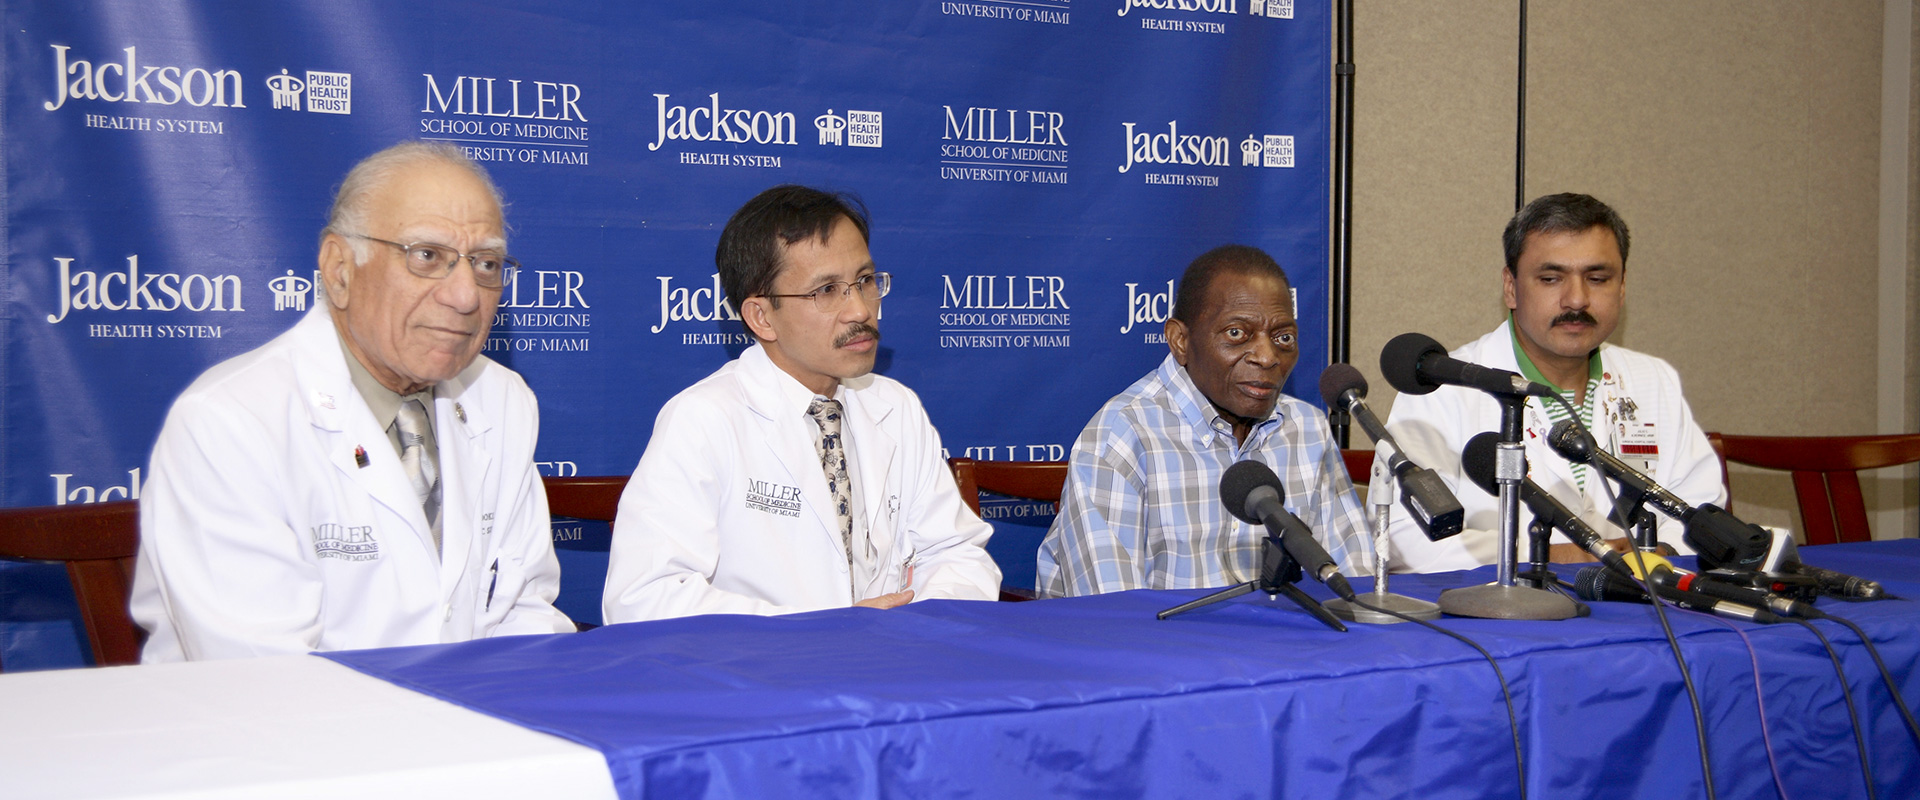 Dr. Si Pham, team and Louis James Quarterman press conference large